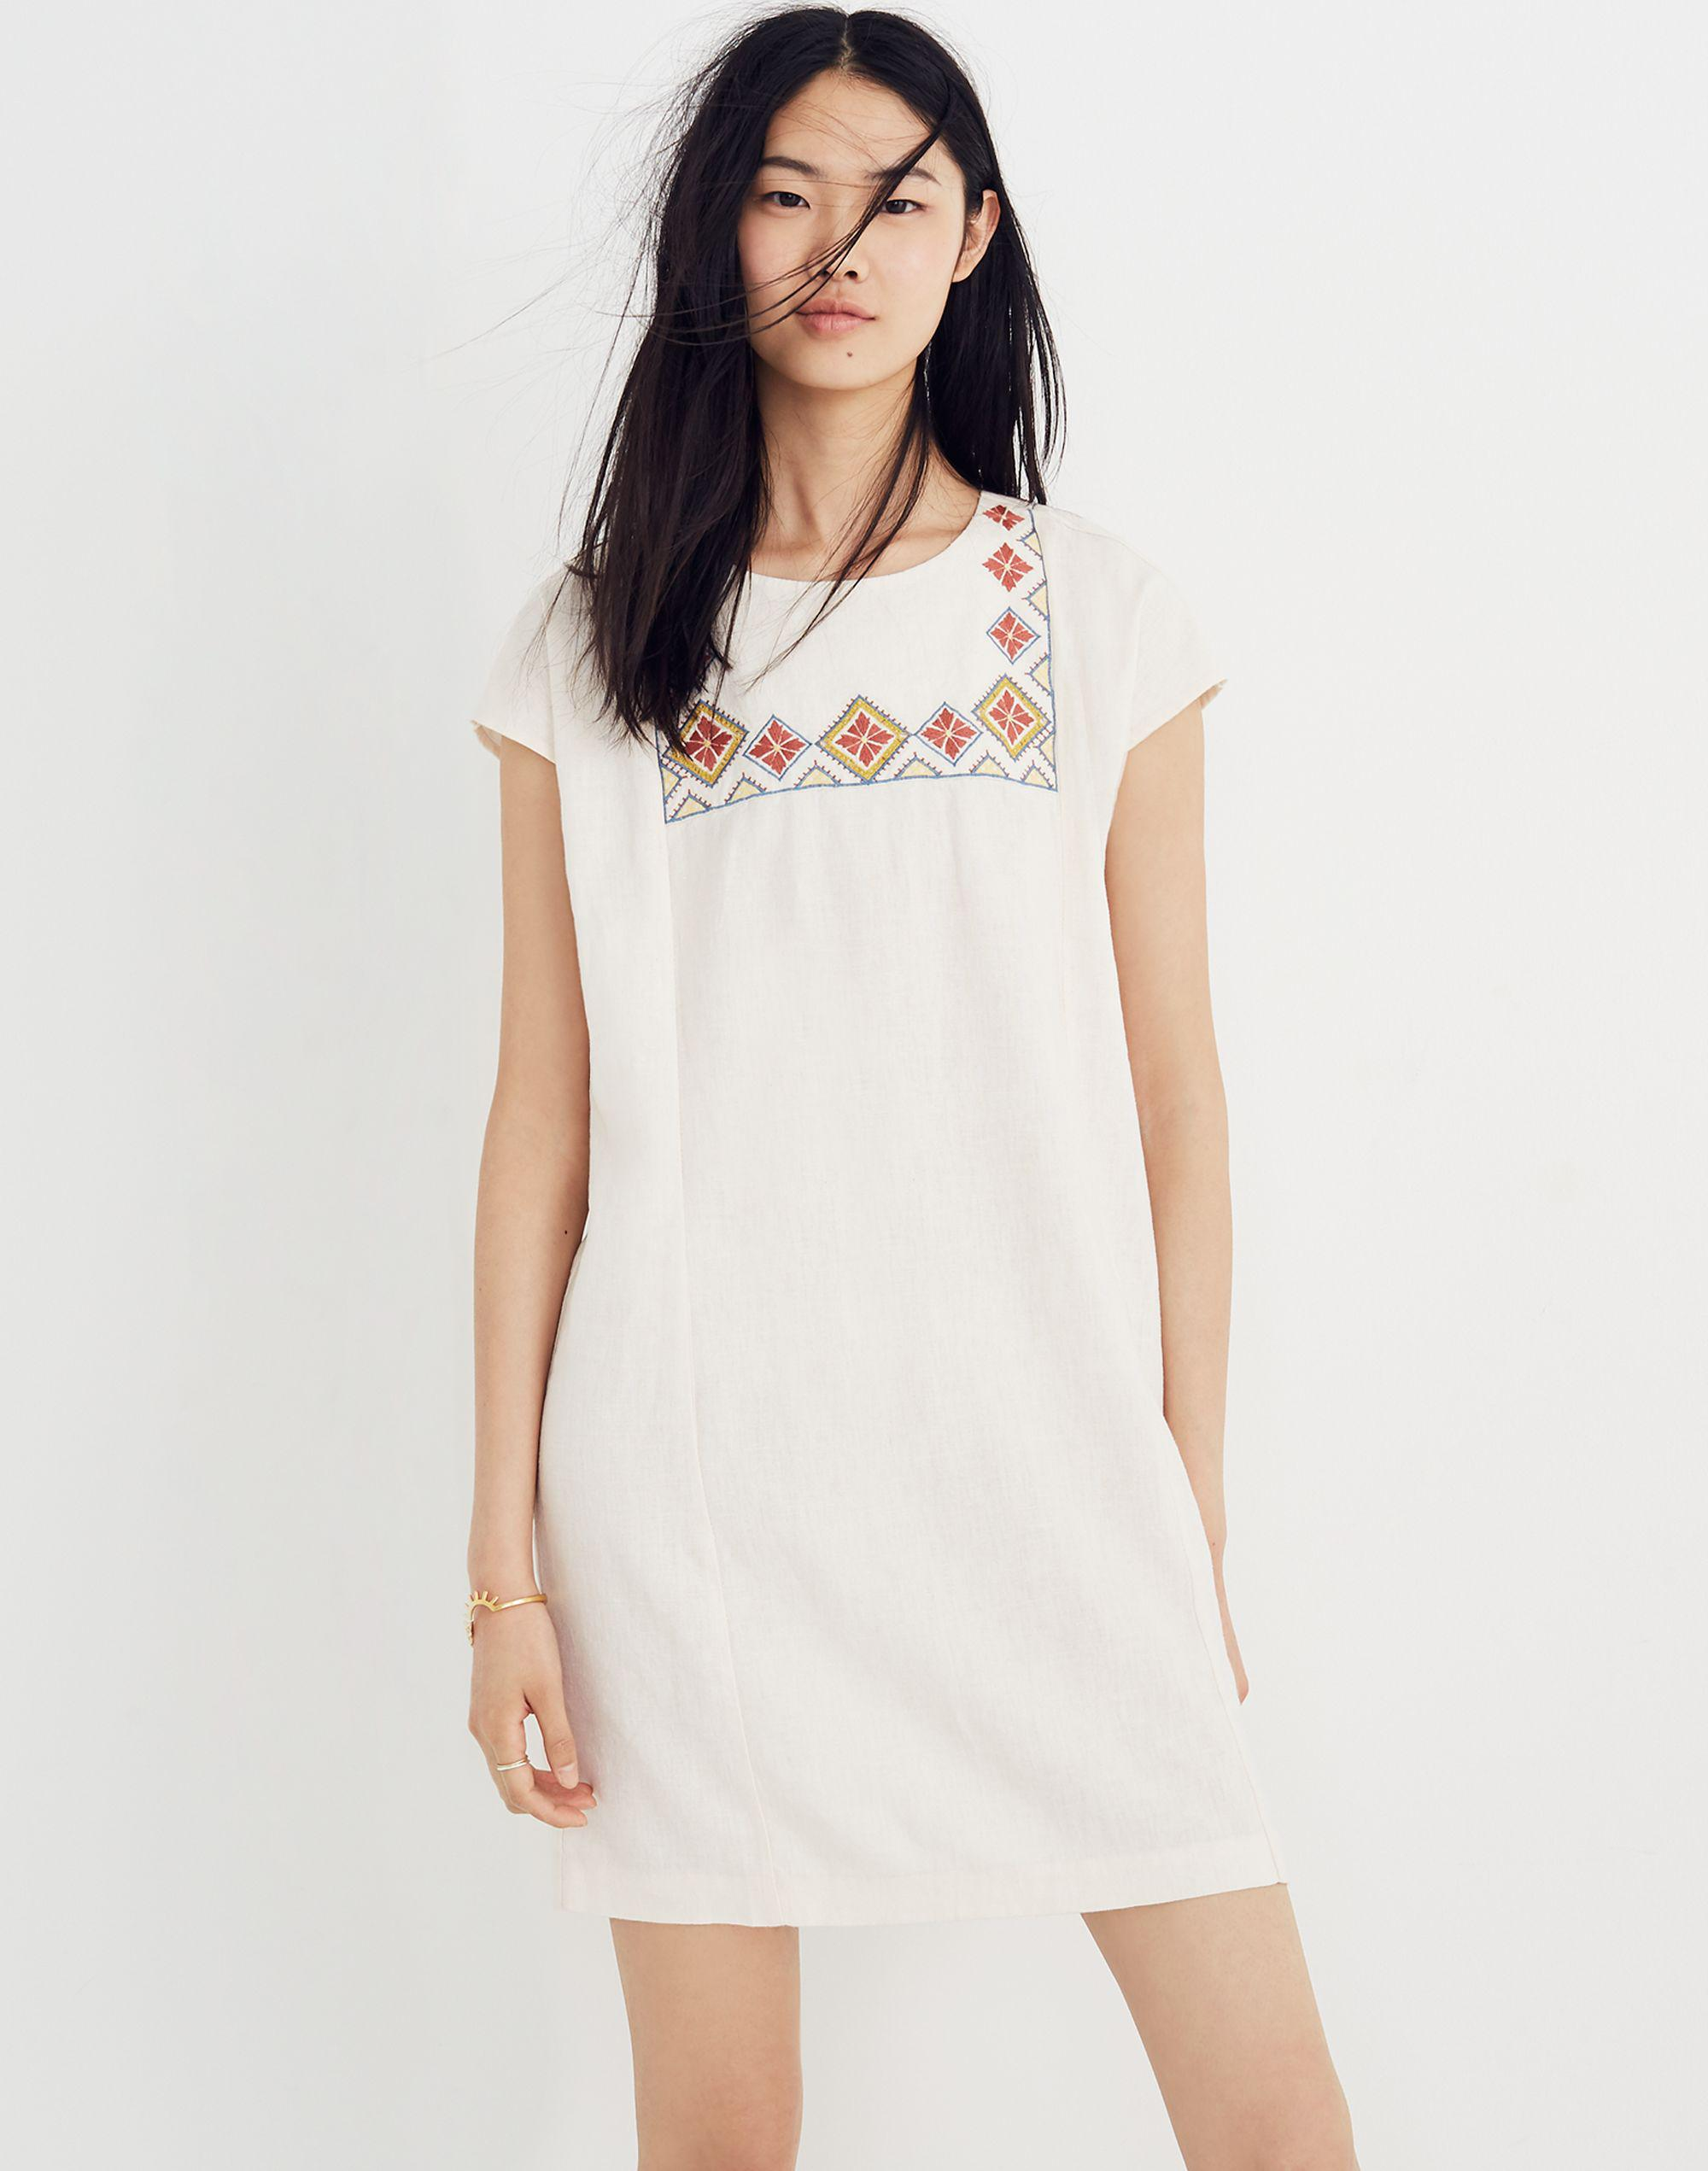 623133b8fa Madewell Embroidered Pinon Dress in White - Lyst